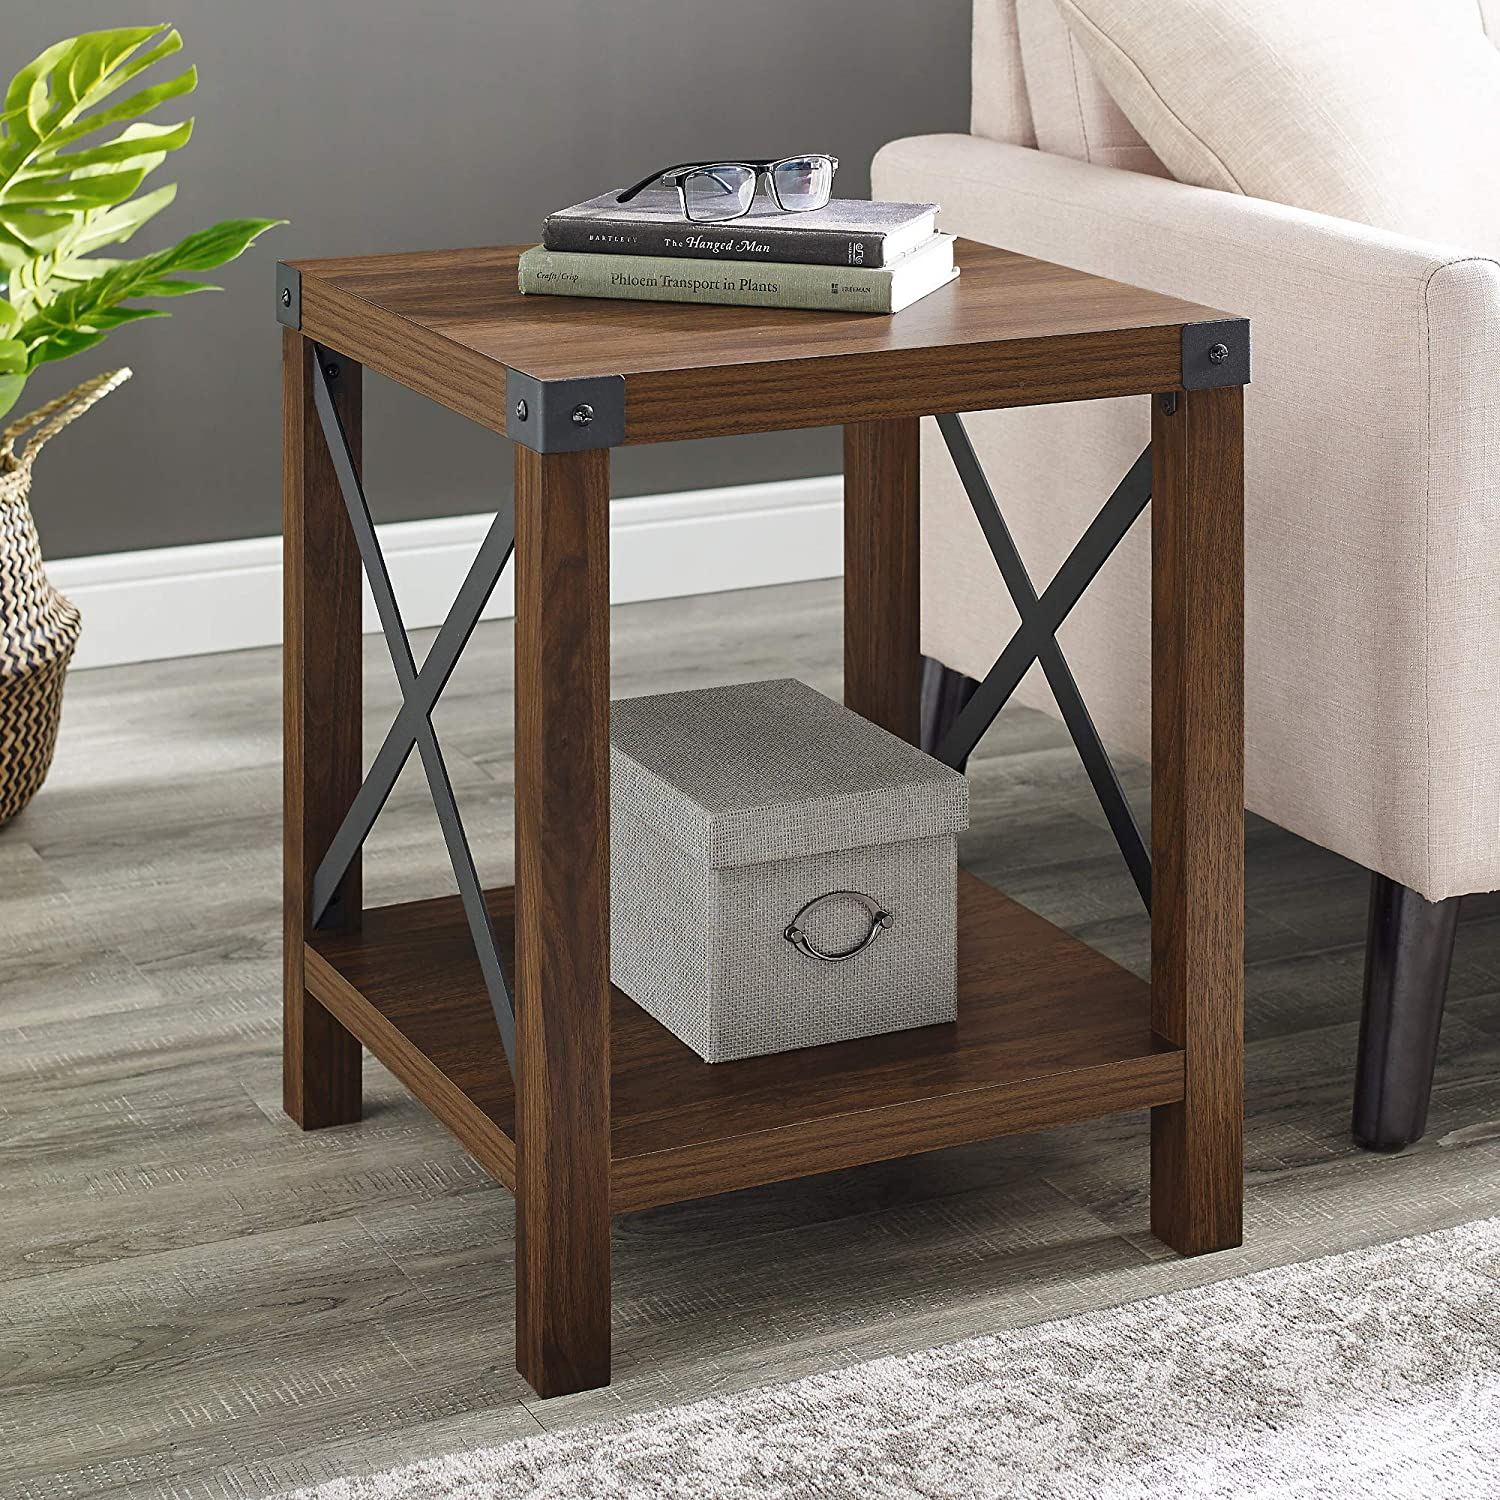 """Walker Edison Modern Farmhouse Metal X Wood Stand Storage Cabinet for TV's up to 64"""" Living Room (60 Inch) - Rustic Oak"""